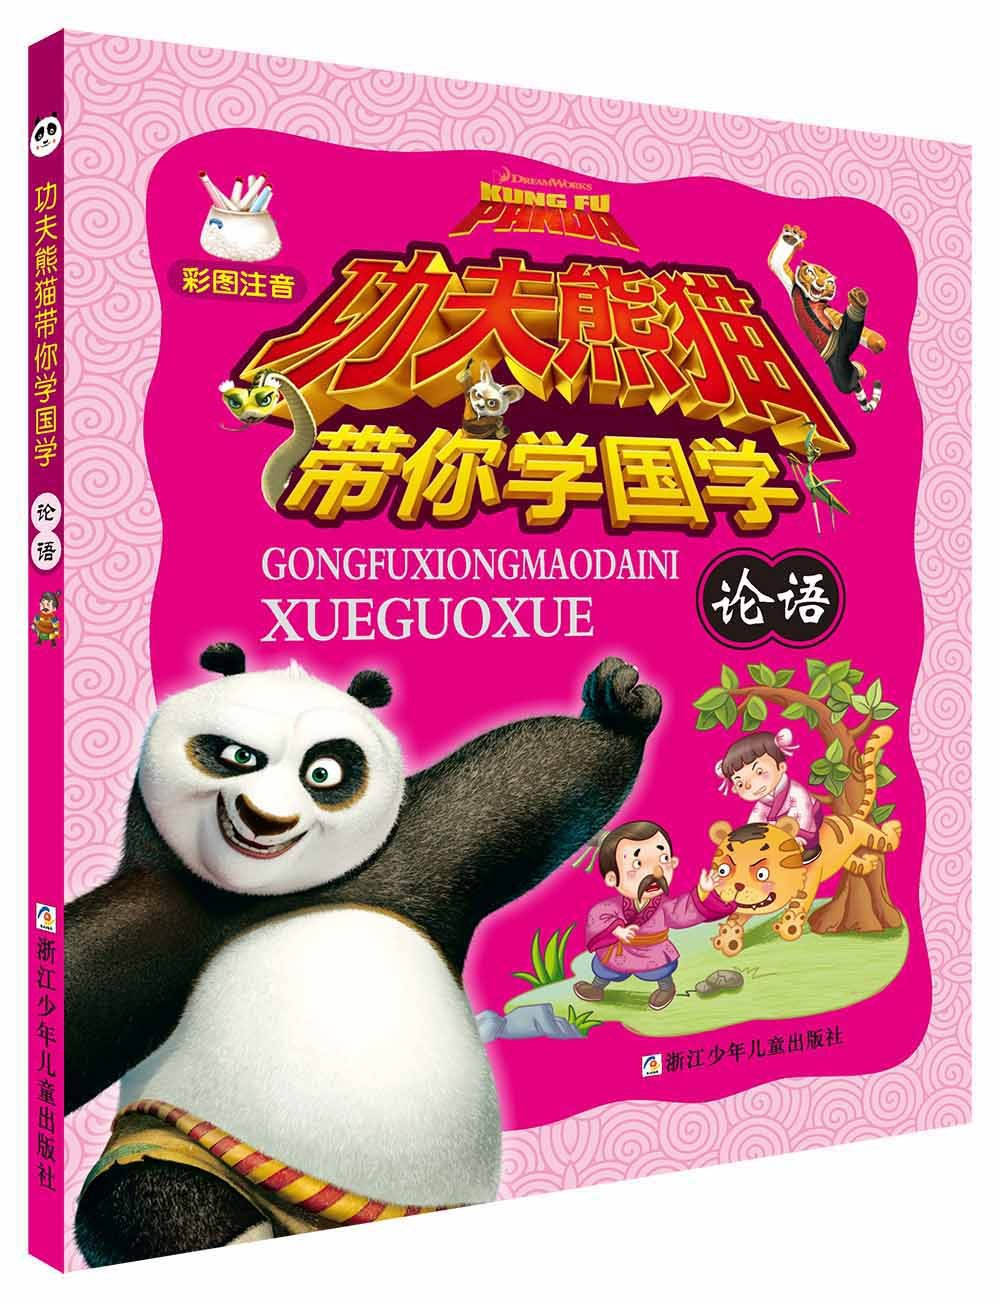 Kids Children Learn Chinese Culture: The Analects Of Confucius With Pin Yin And Pictures